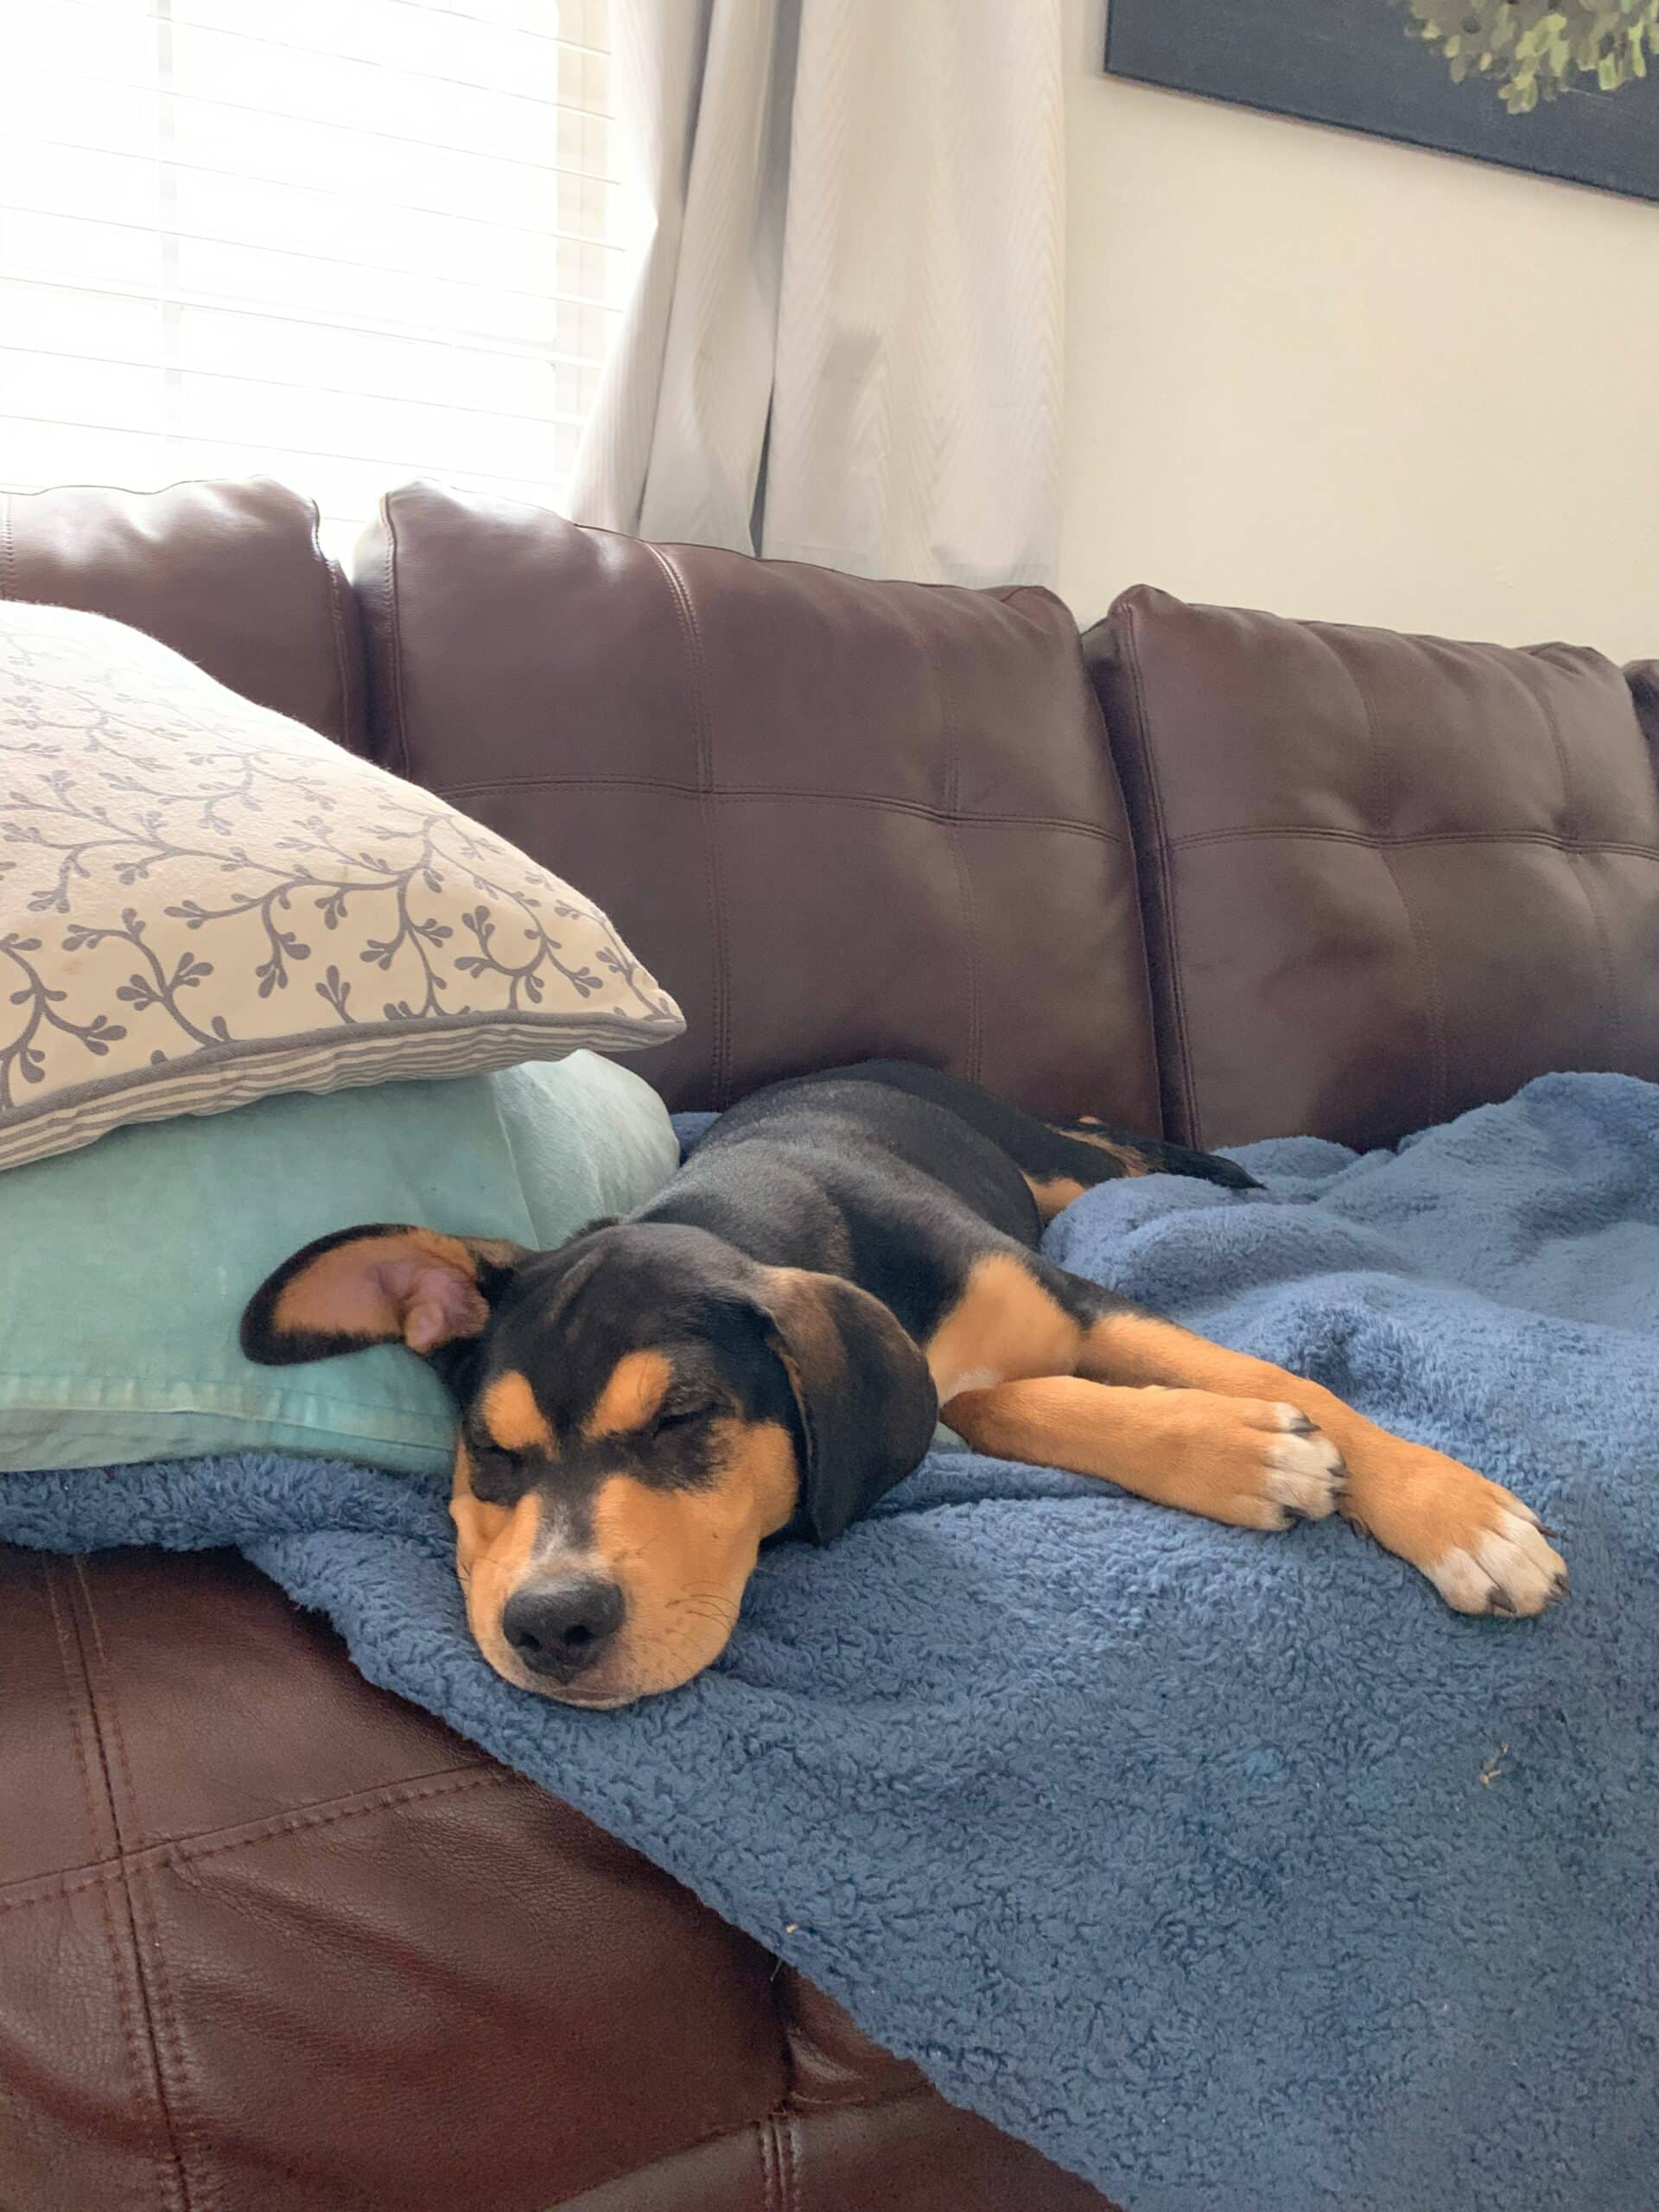 Puppy on blue blanket on couch